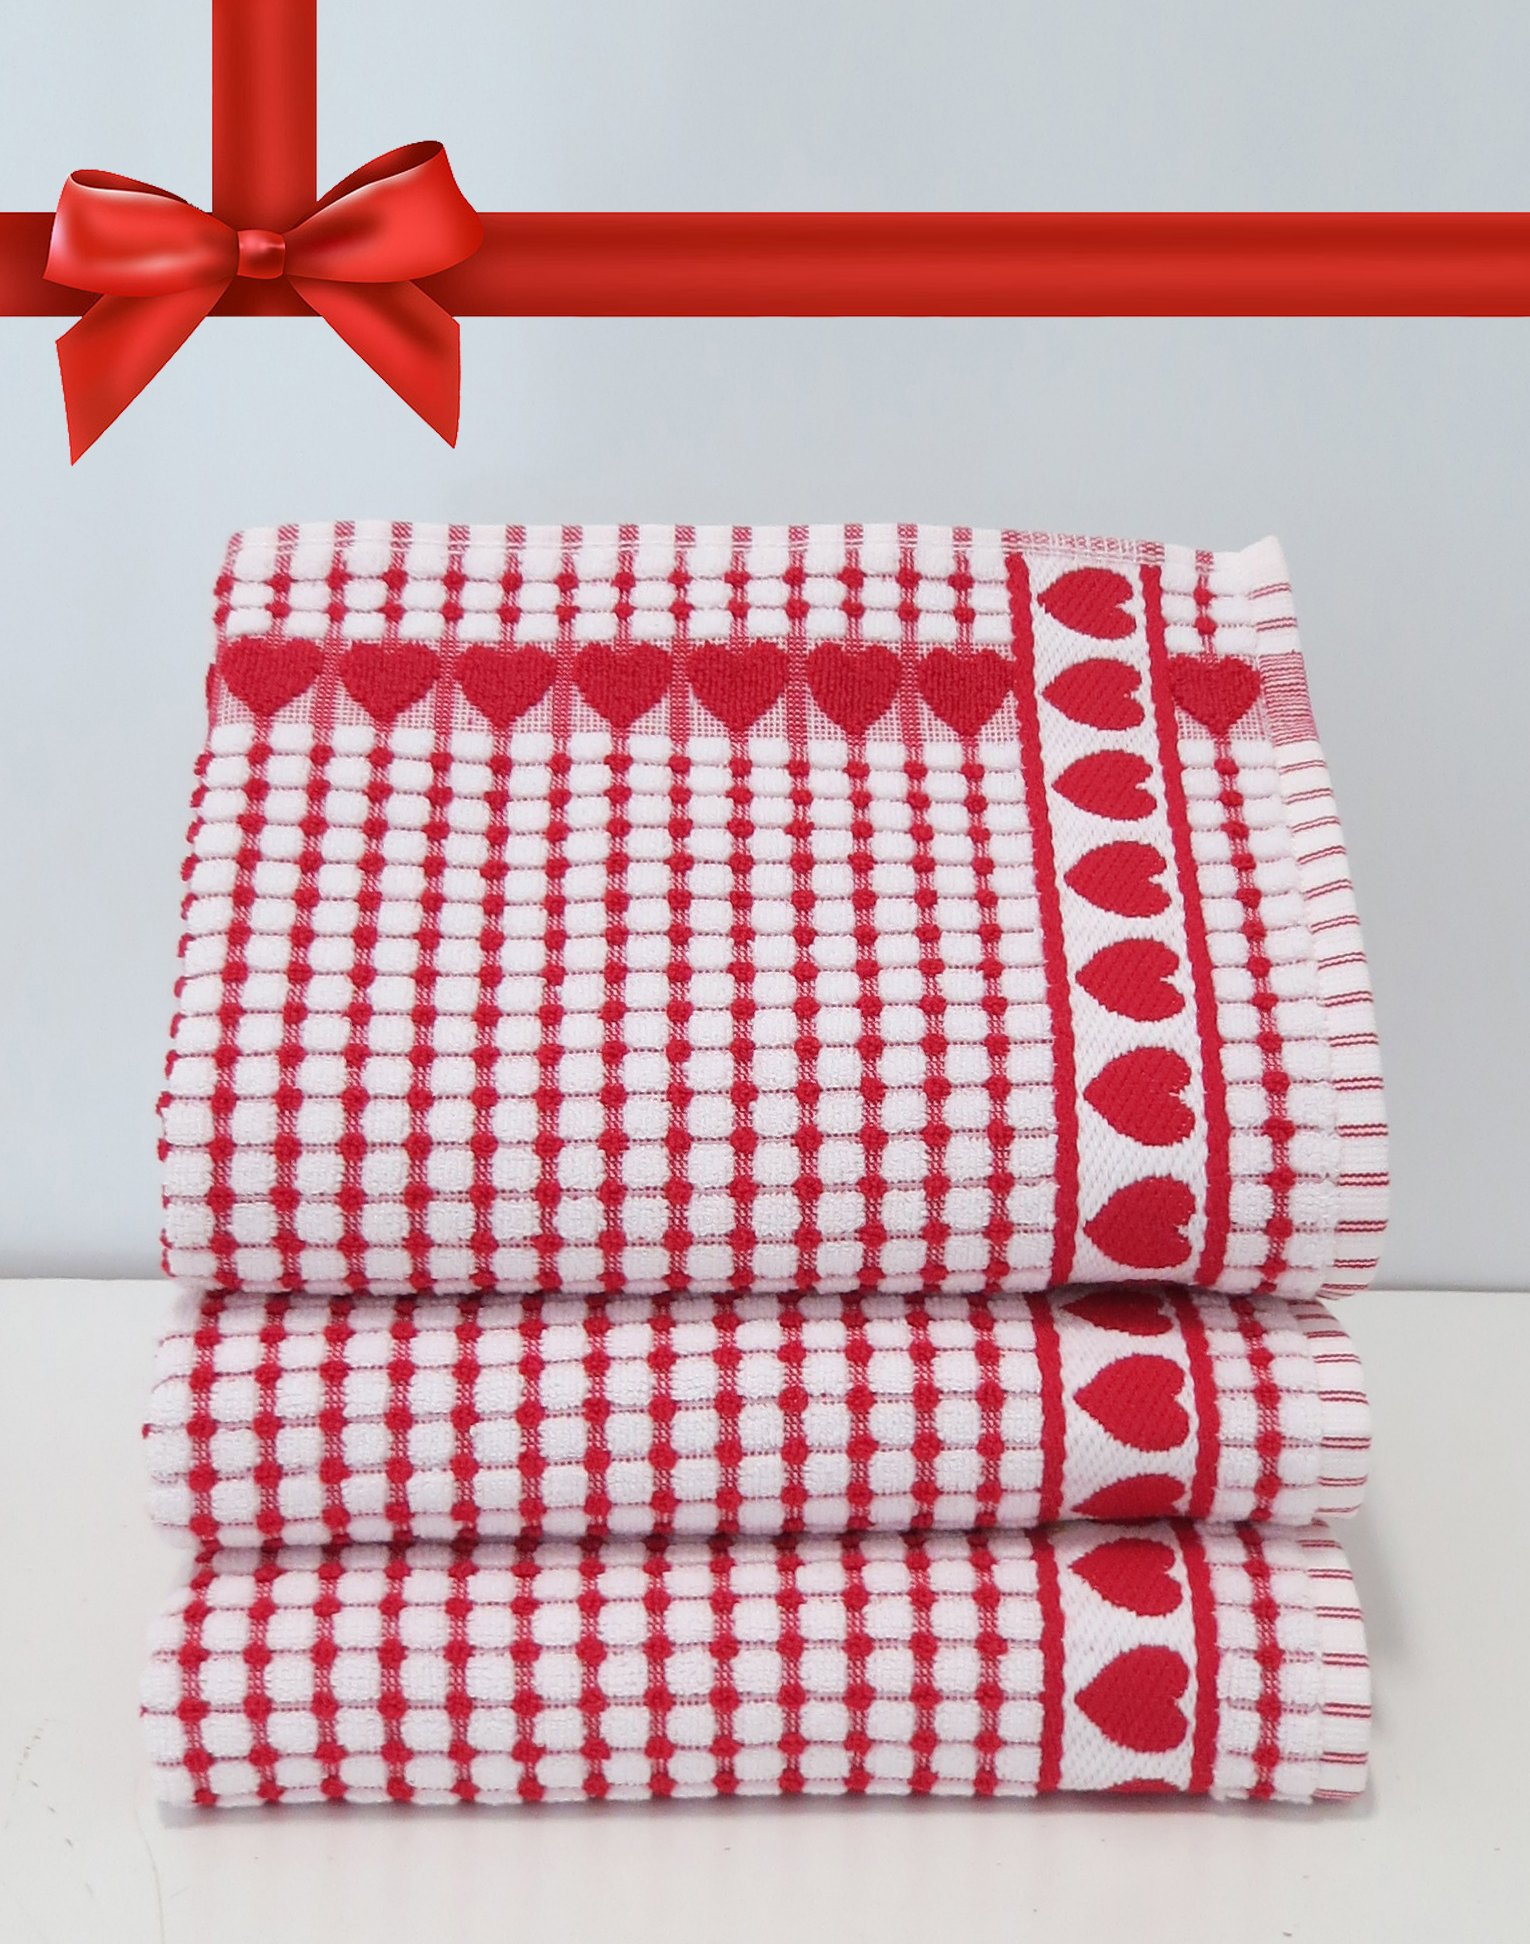 Kitchen Towels , Red Heart, Highly Absorbent, Low Lint, 100% Cotton Dish Towels, check print. Tea Towels, 19 x 31, Love Gift Towel. 3 Piece, Bleachable Towels from Roseberry Linen